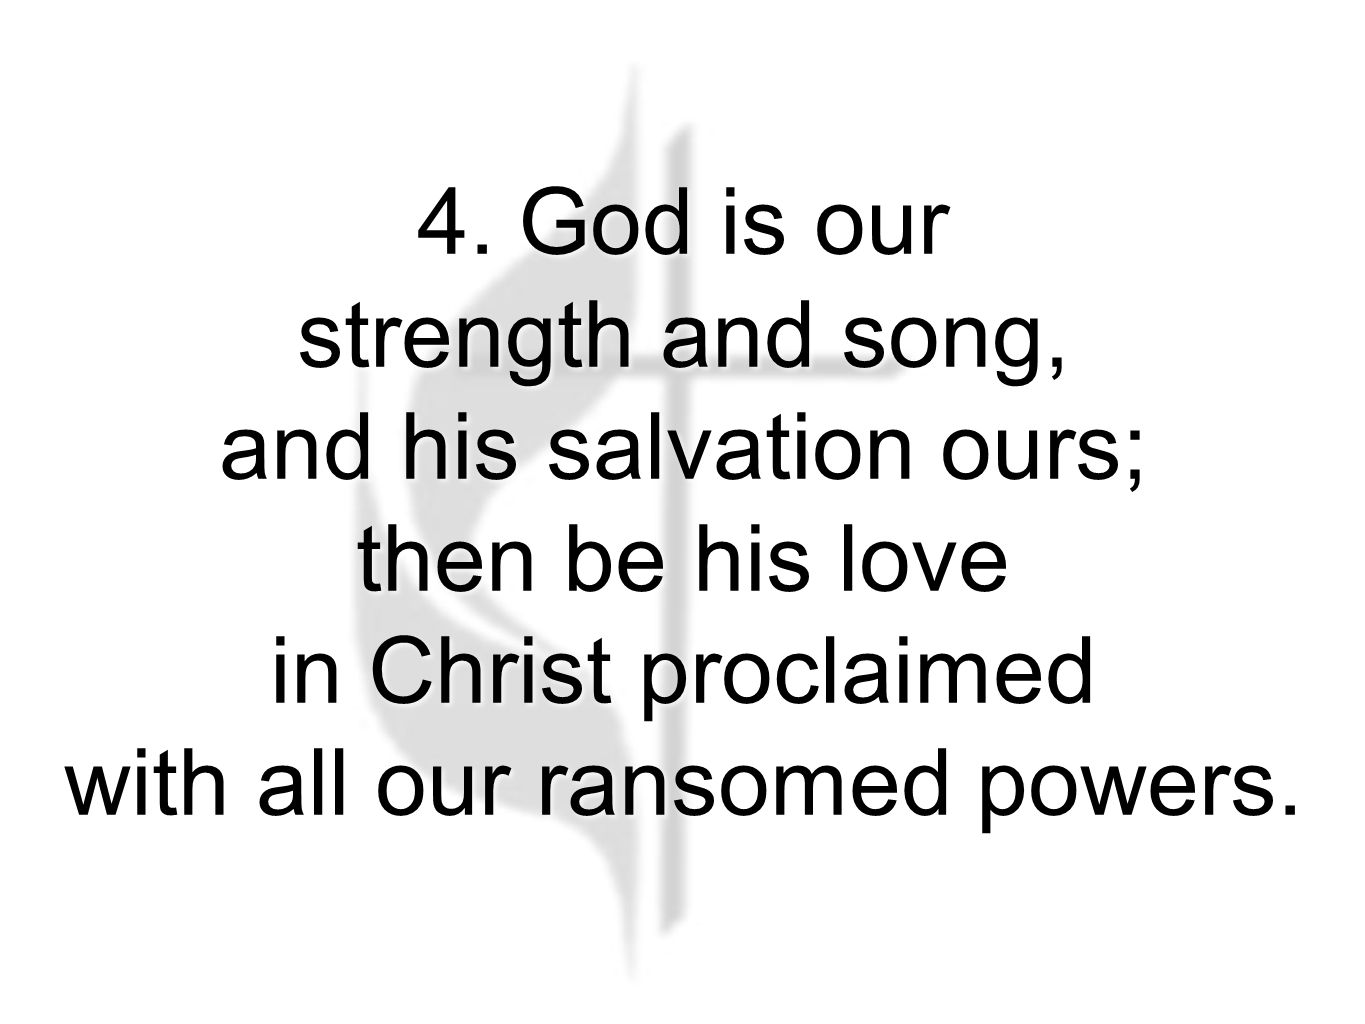 4. God is our strength and song, and his salvation ours; then be his love in Christ proclaimed with all our ransomed powers. Stand Up and Bless the Lo